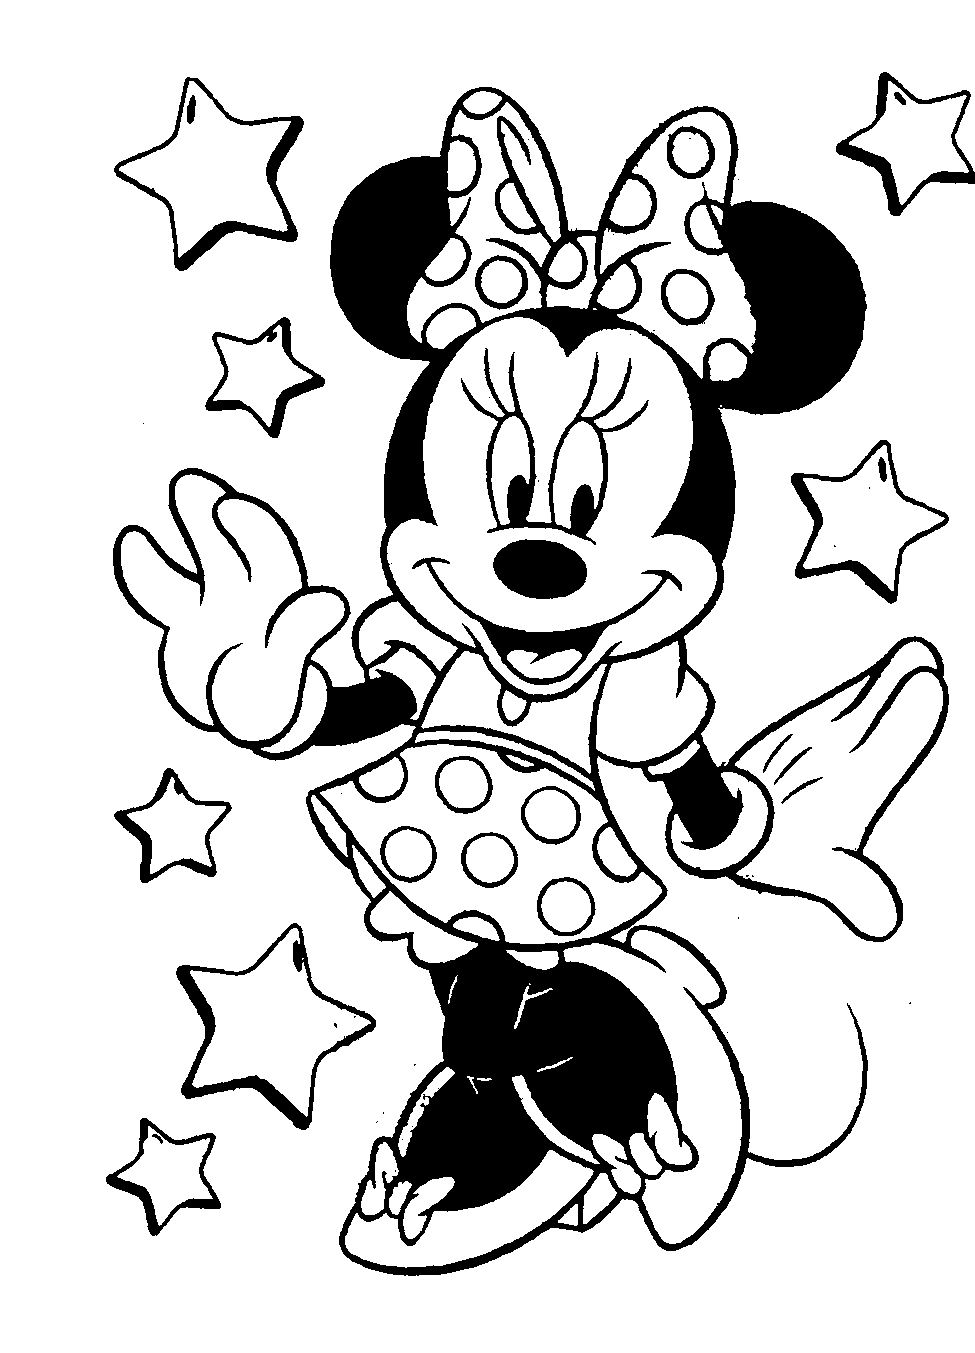 975x1353 mickey mouse and minnie mouse drawings colouring pages - Drawing Pictures For Colouring